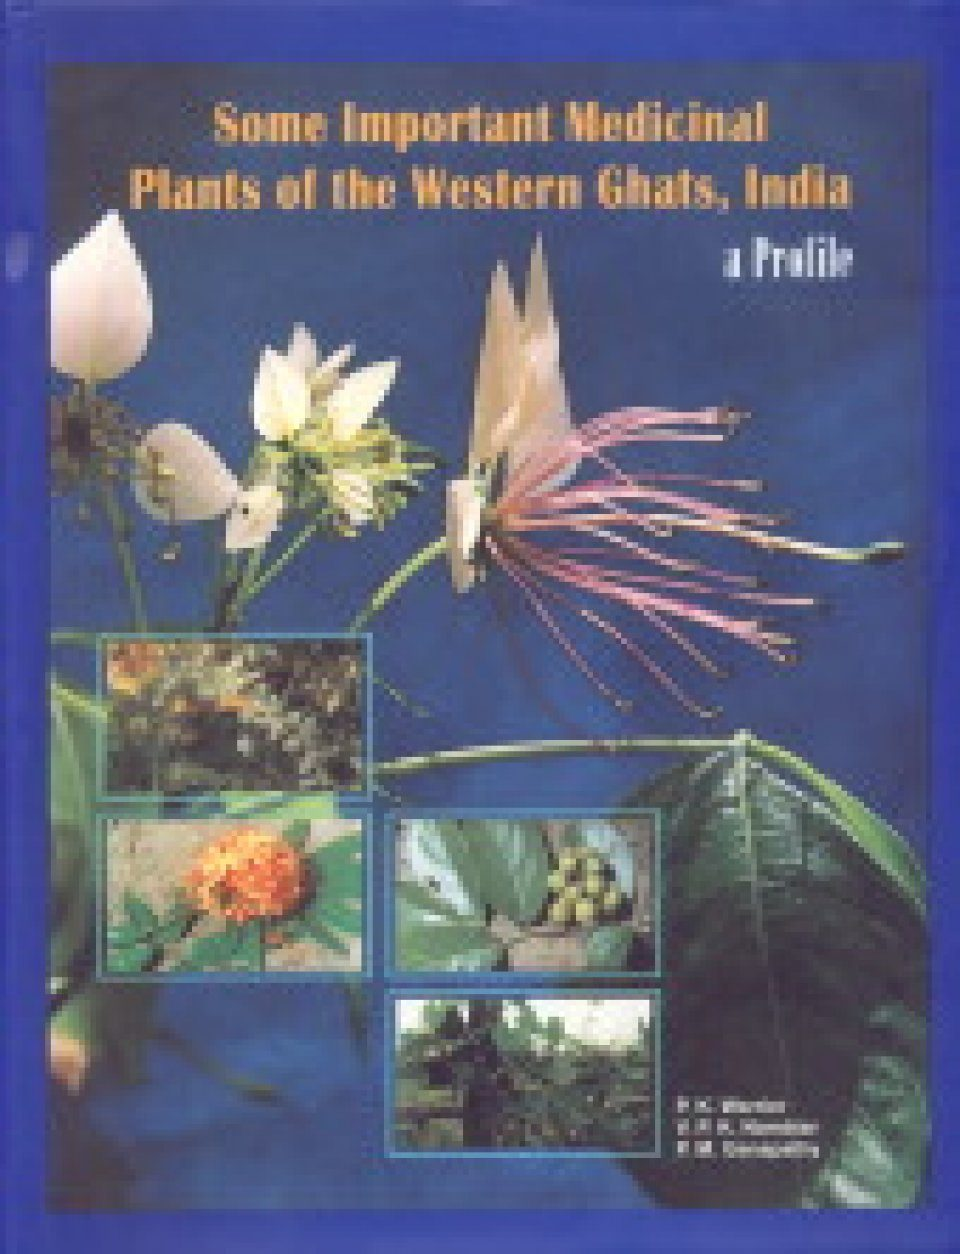 Some Important Medicinal Plants of the Western Ghats, India